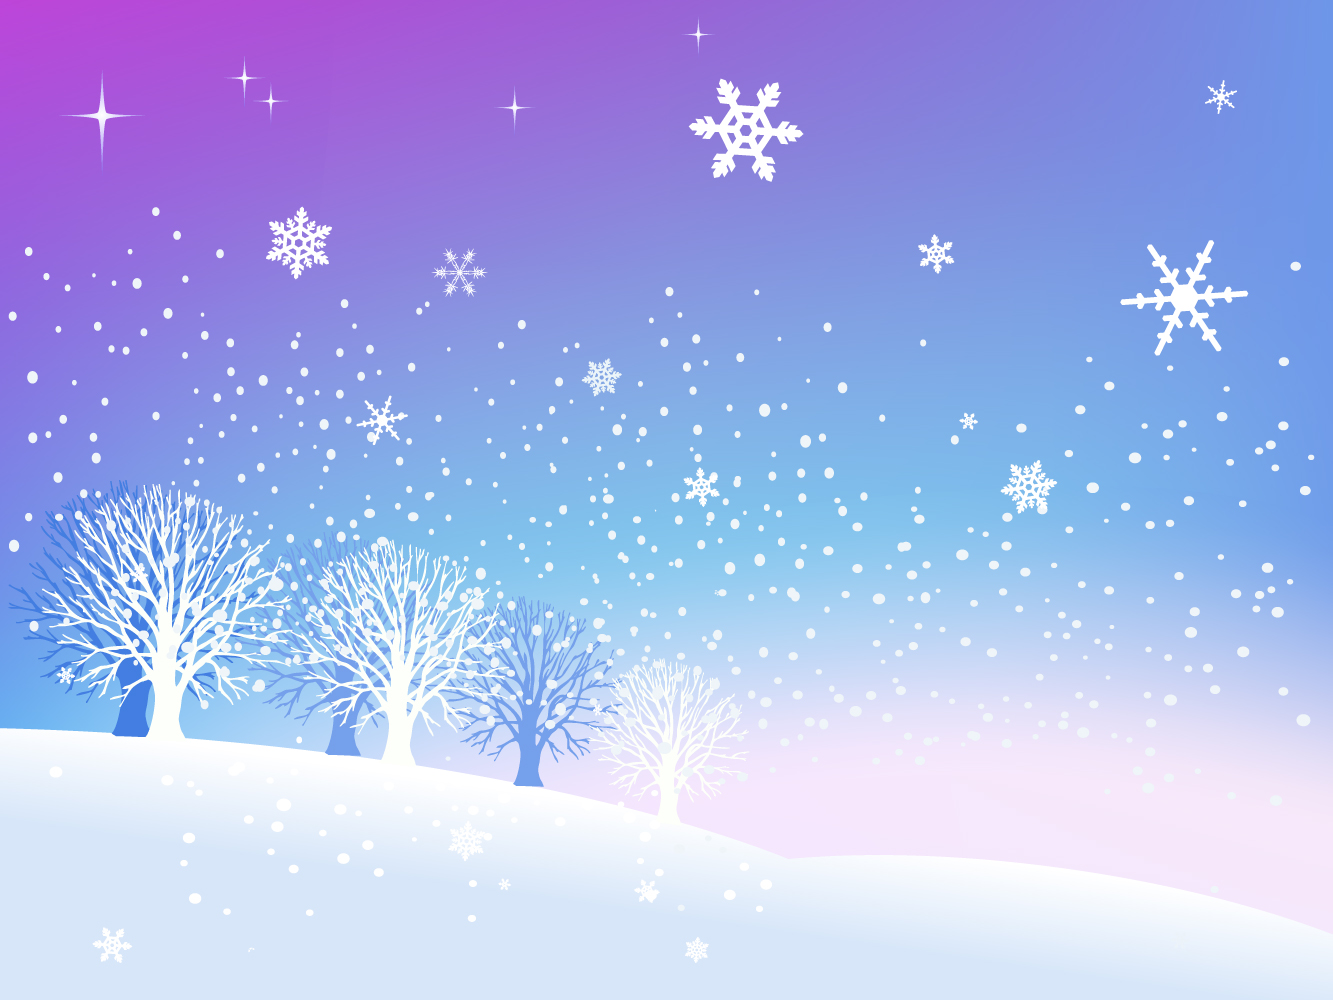 Free Vector Art Snow Scenes